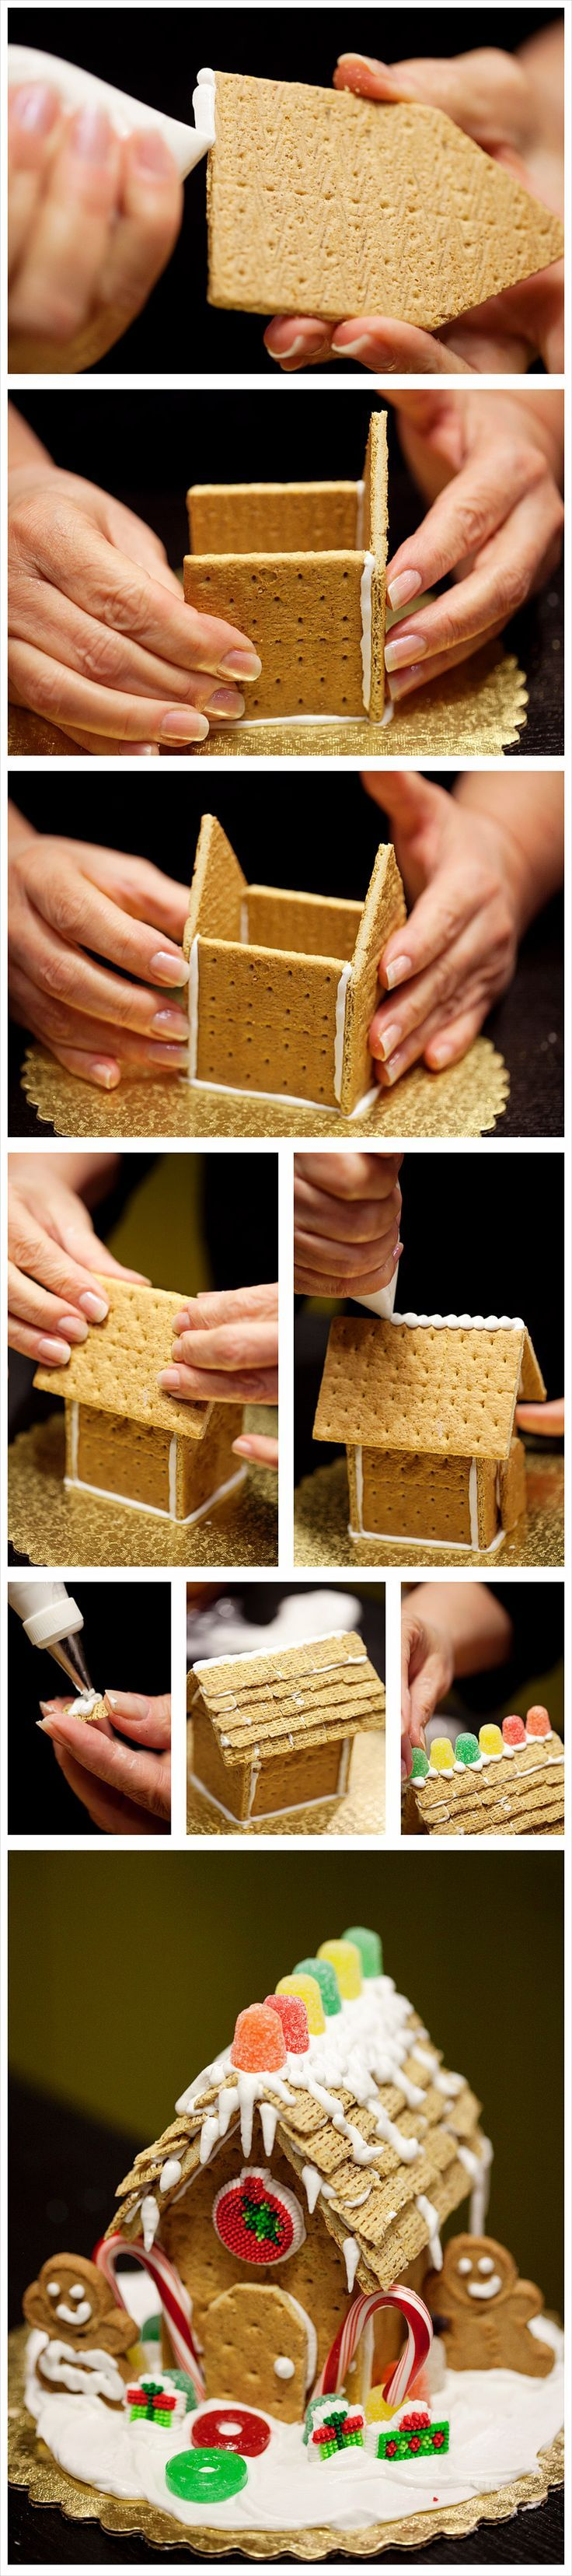 mini gingerbread house using graham crackers